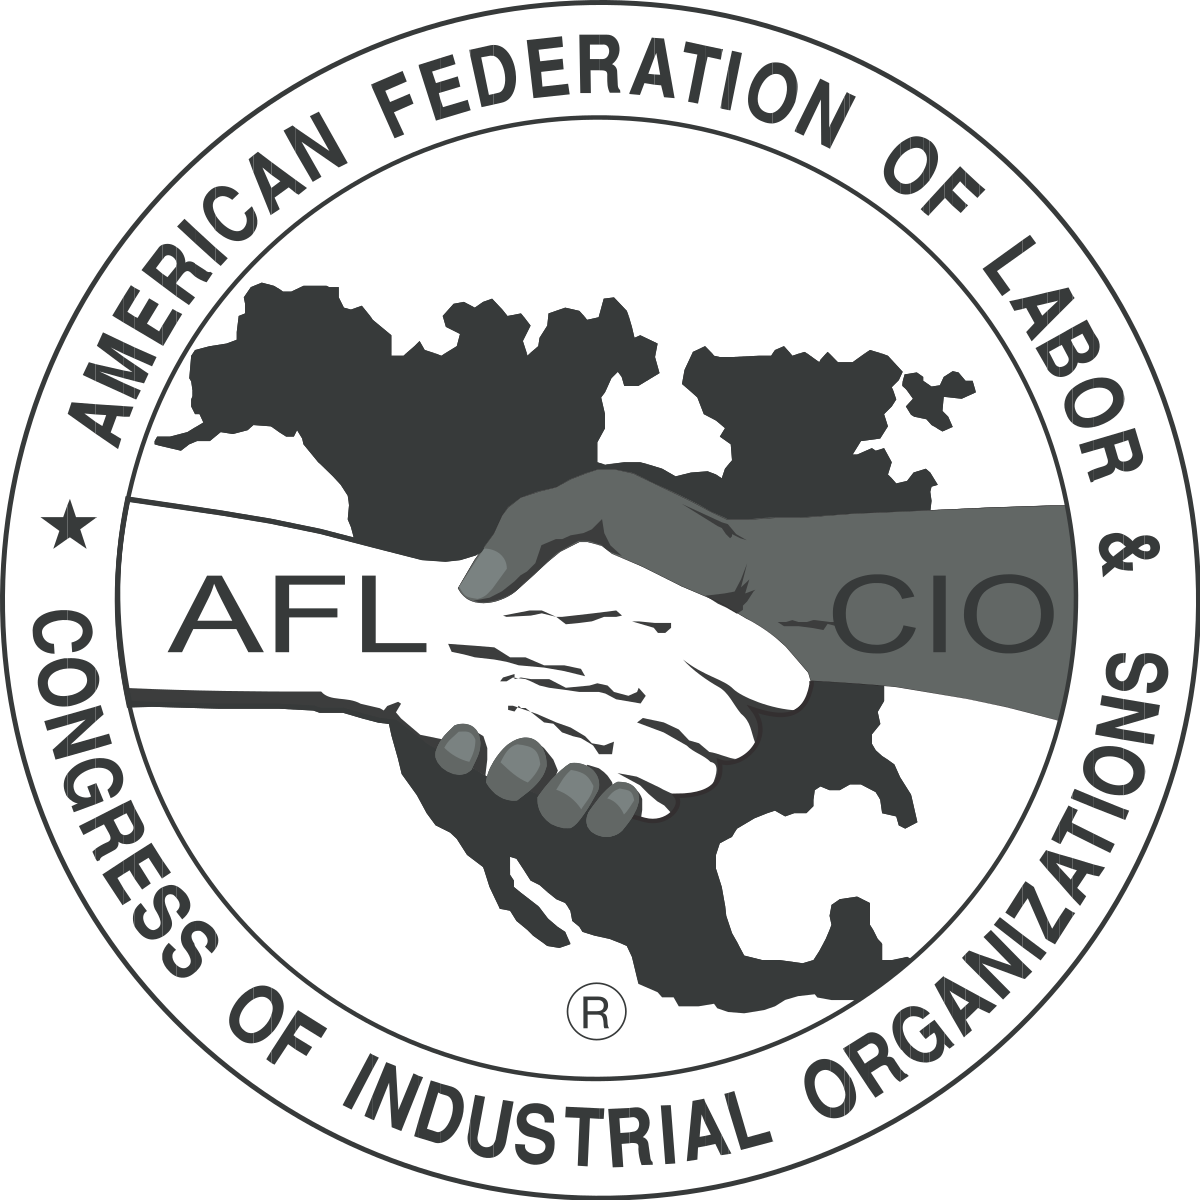 American Federation of Labor and Congress of Industrial Organizations logo